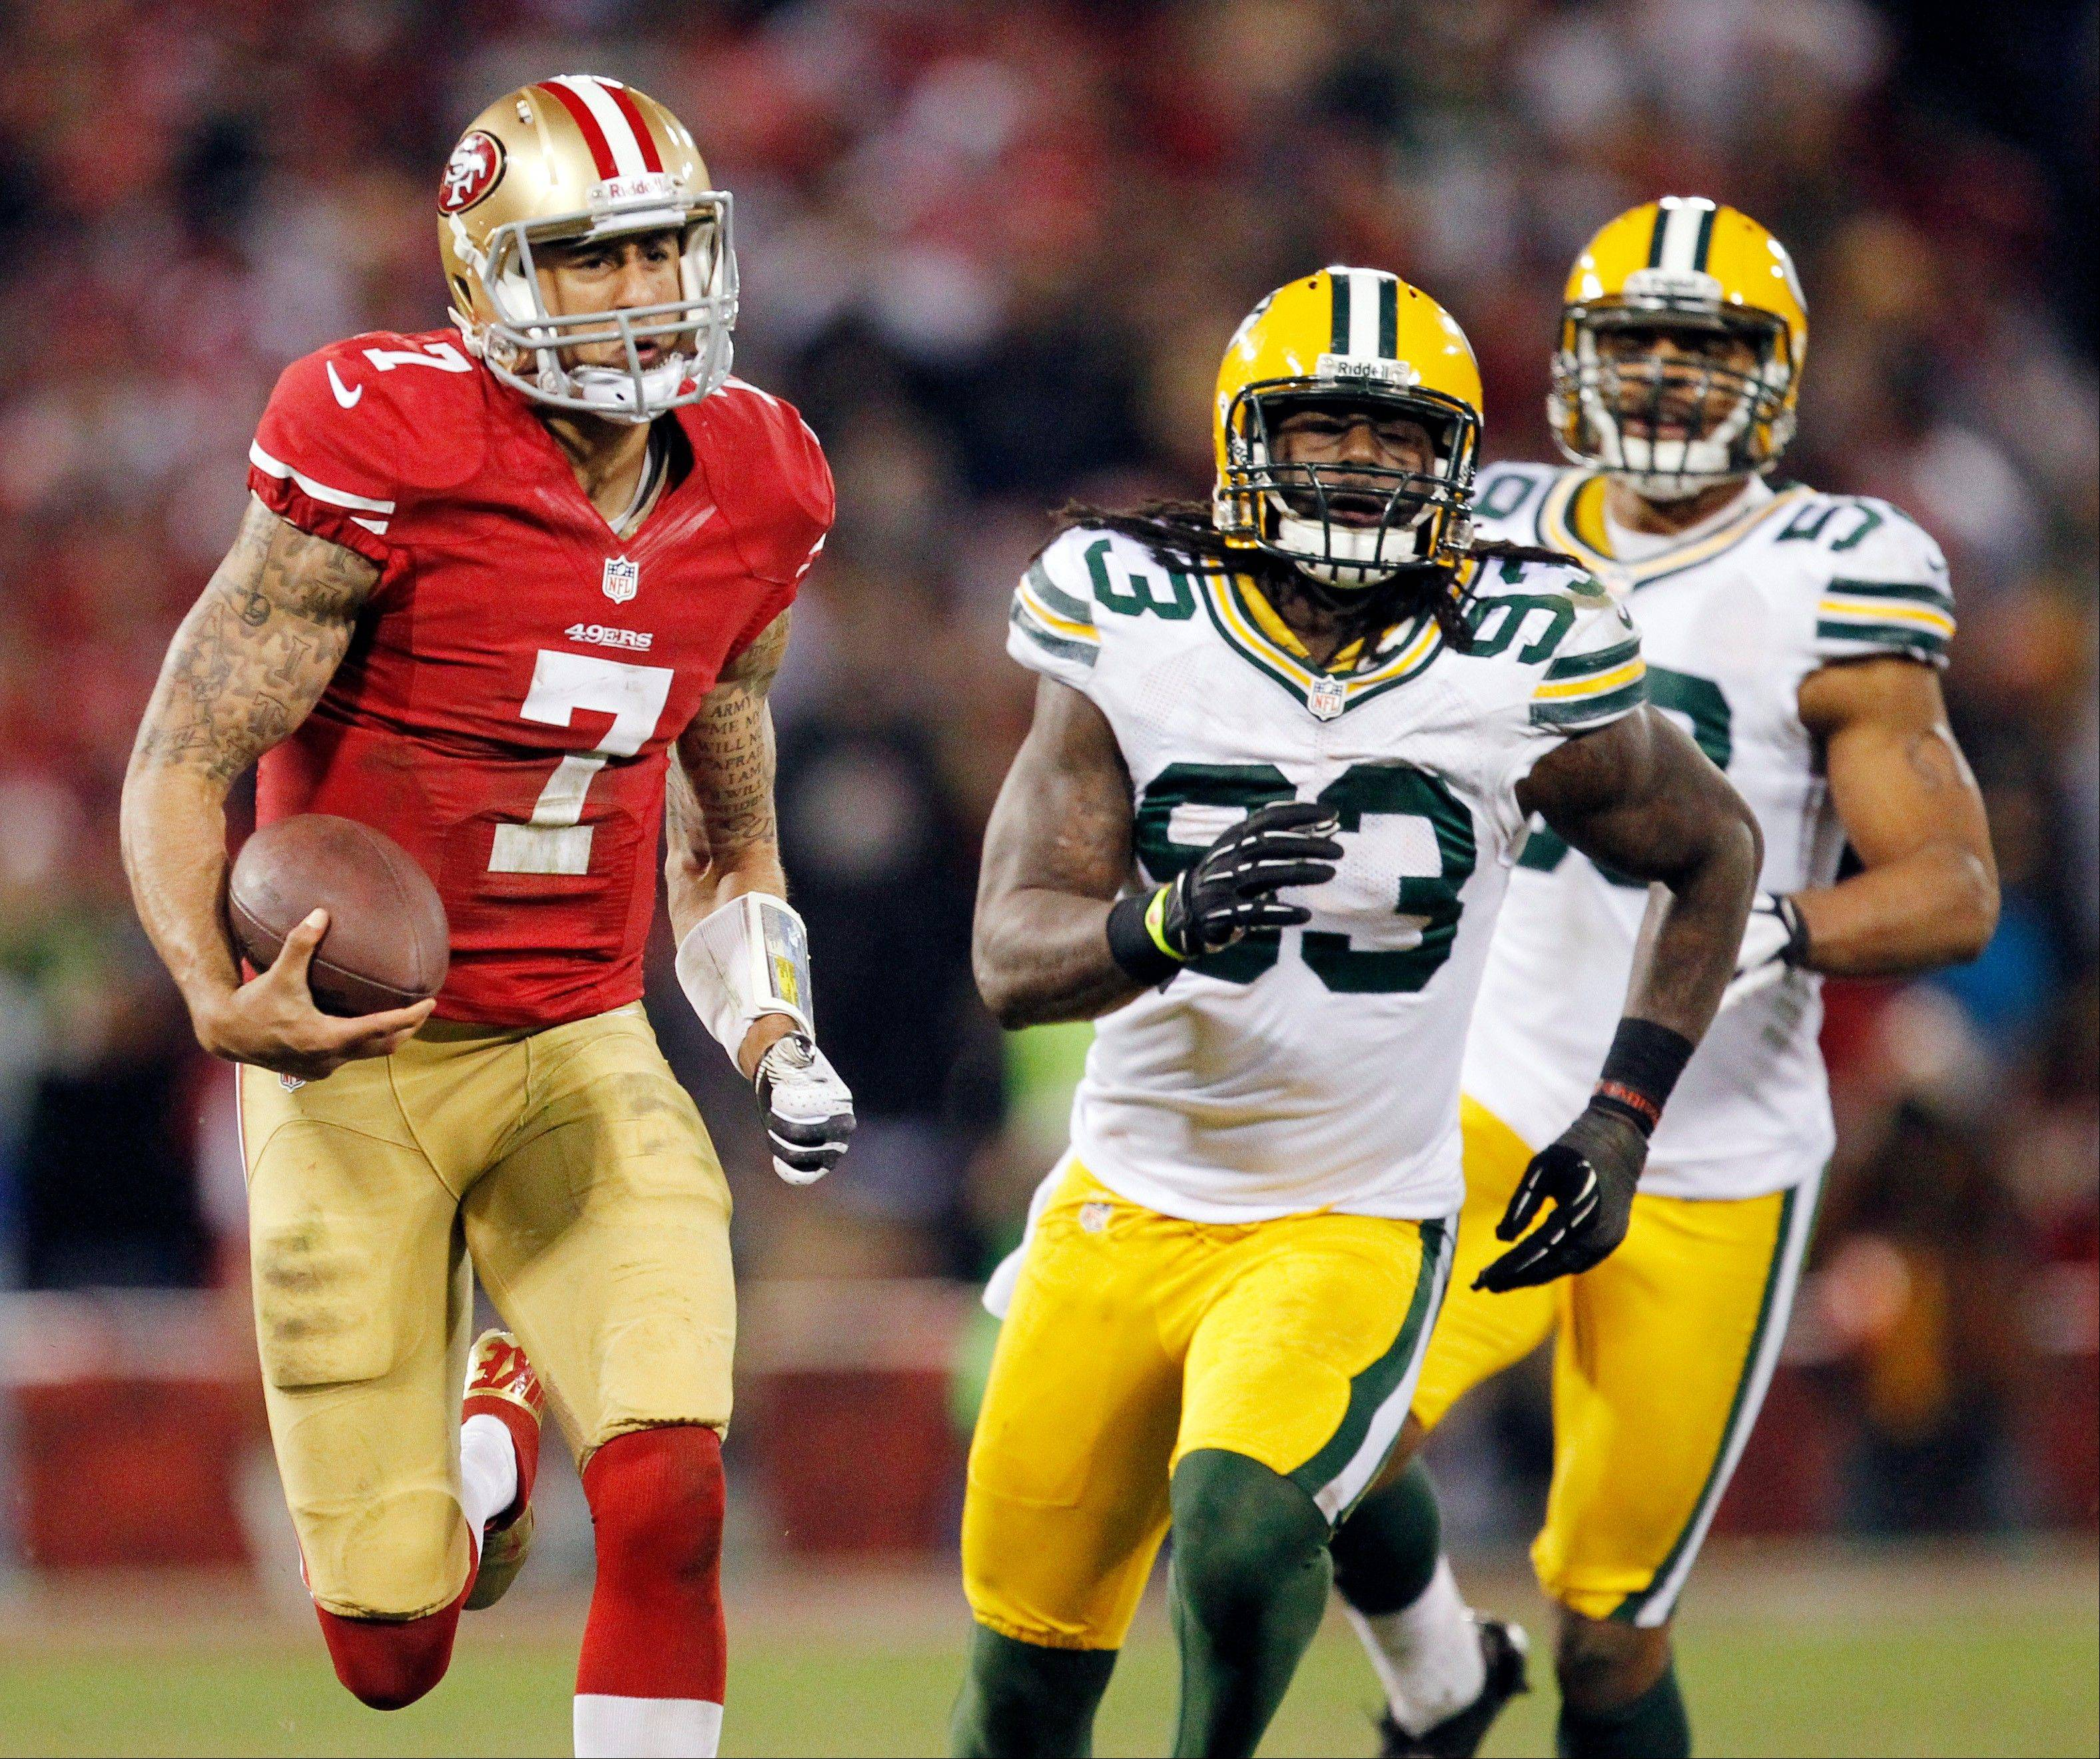 ADVANCE FOR WEEKEND EDITIONS, SEPT. 7-8 - FILE - In this Jan. 12, 2013, file photo, San Francisco 49ers quarterback Colin Kaepernick (7) runs for a 56-yard touchdown past Green Bay Packers outside linebacker Erik Walden (93) and inside linebacker Brad Jones (59) during the third quarter of an NFC divisional playoff NFL football game in San Francisco. The last time the Packers saw Kaepernick in person, he was a meteor tearing through their flimsy defense. When Green Bay journeys to San Francisco for Sunday's marquee matchup with the NFC champion 49ers, that defense better be a lot stingier, or the Packers will get smashed up again. (AP Photo/Tony Avelar, File)